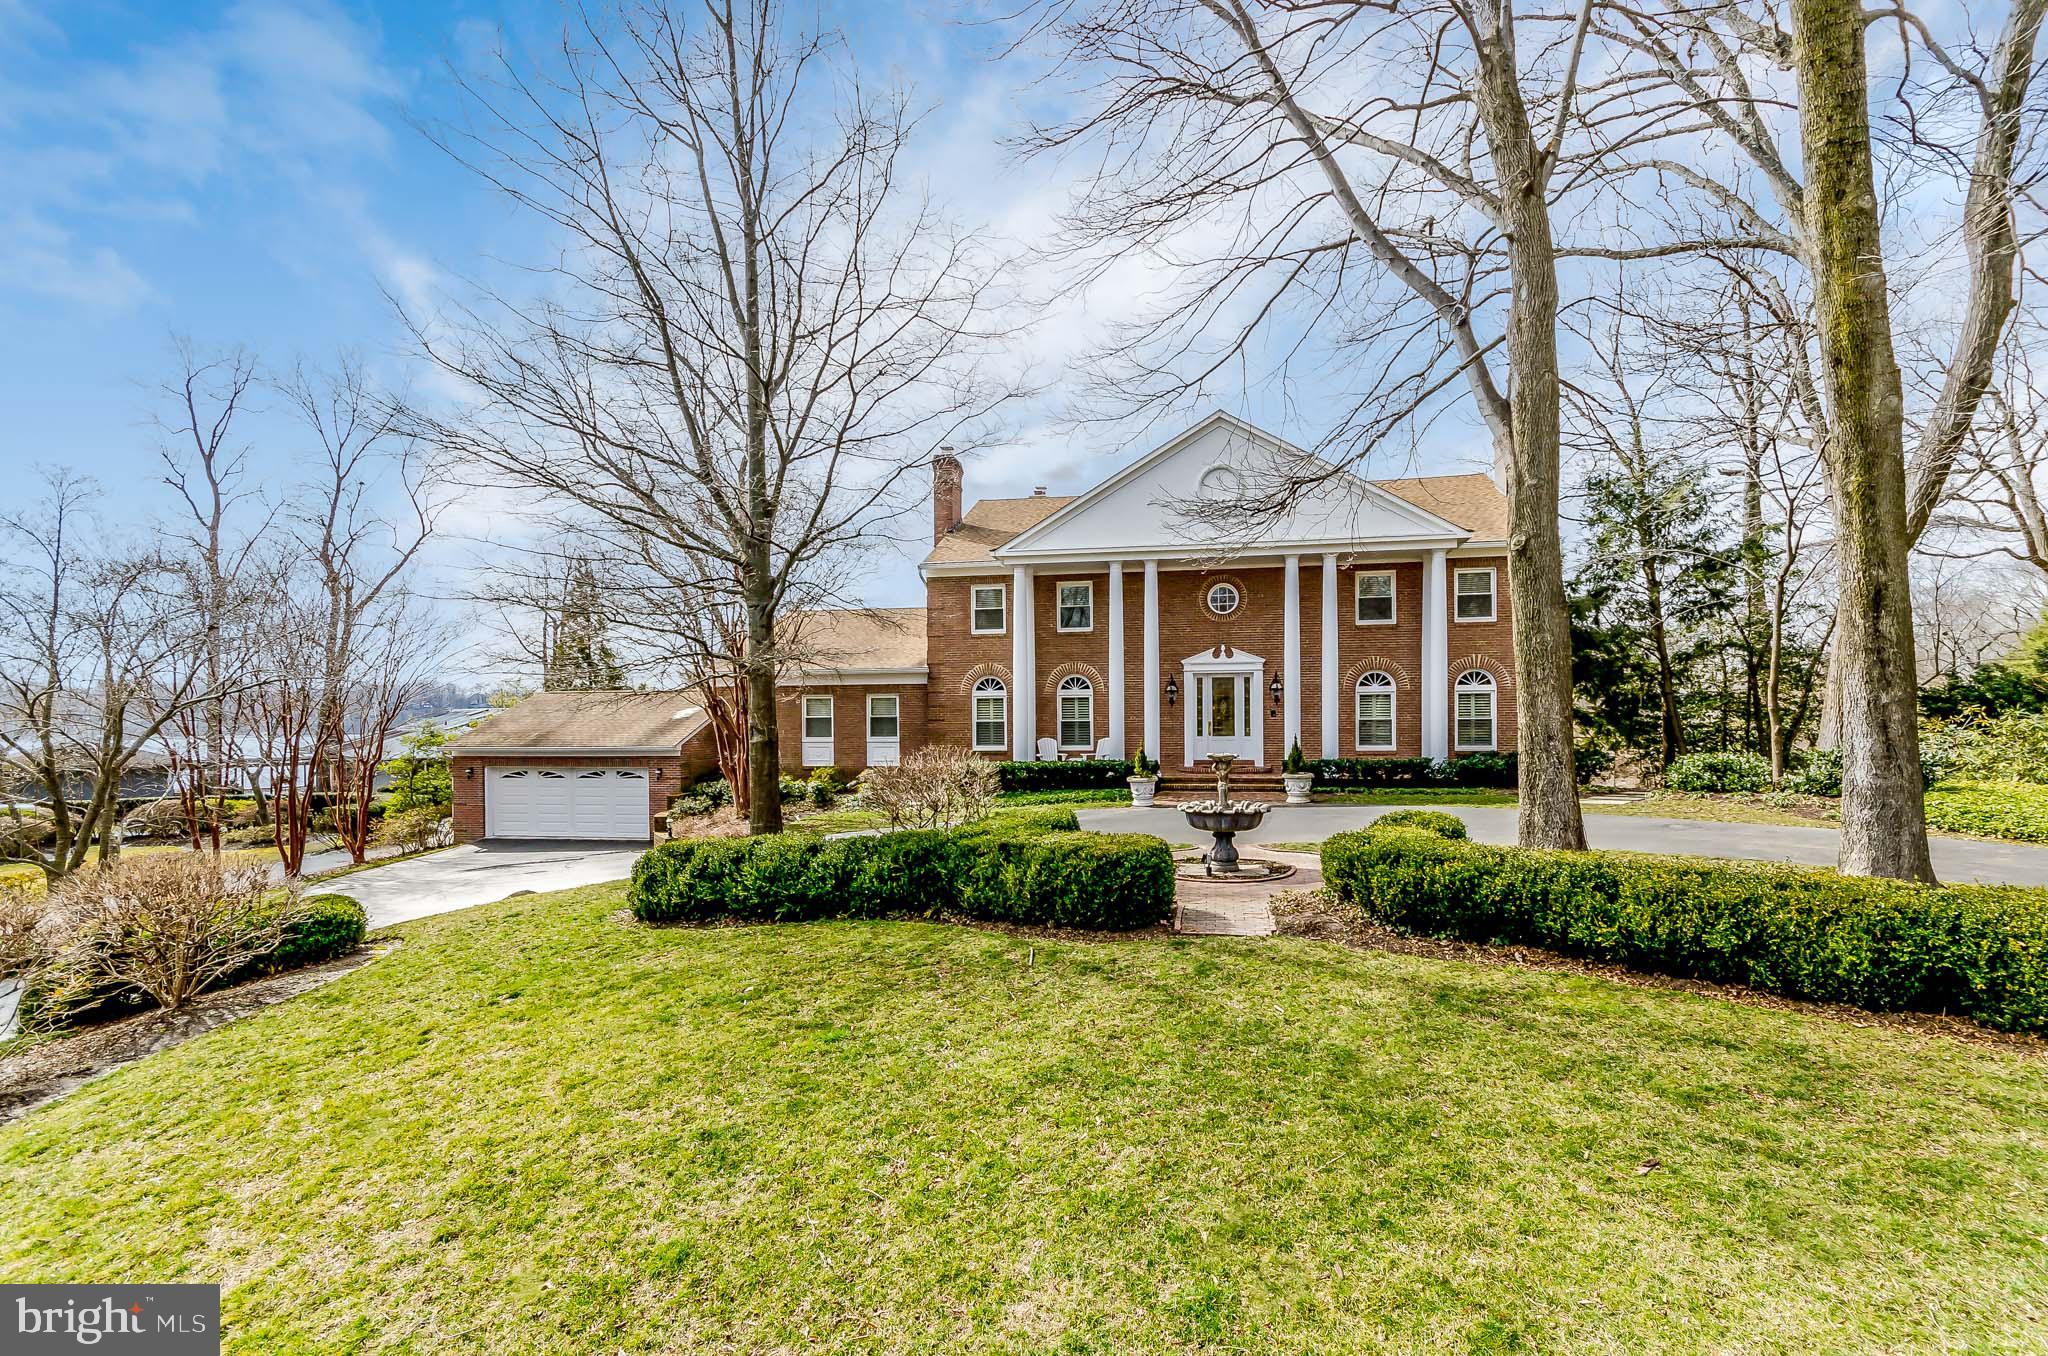 1128 ASQUITH DRIVE, ARNOLD, MD 21012